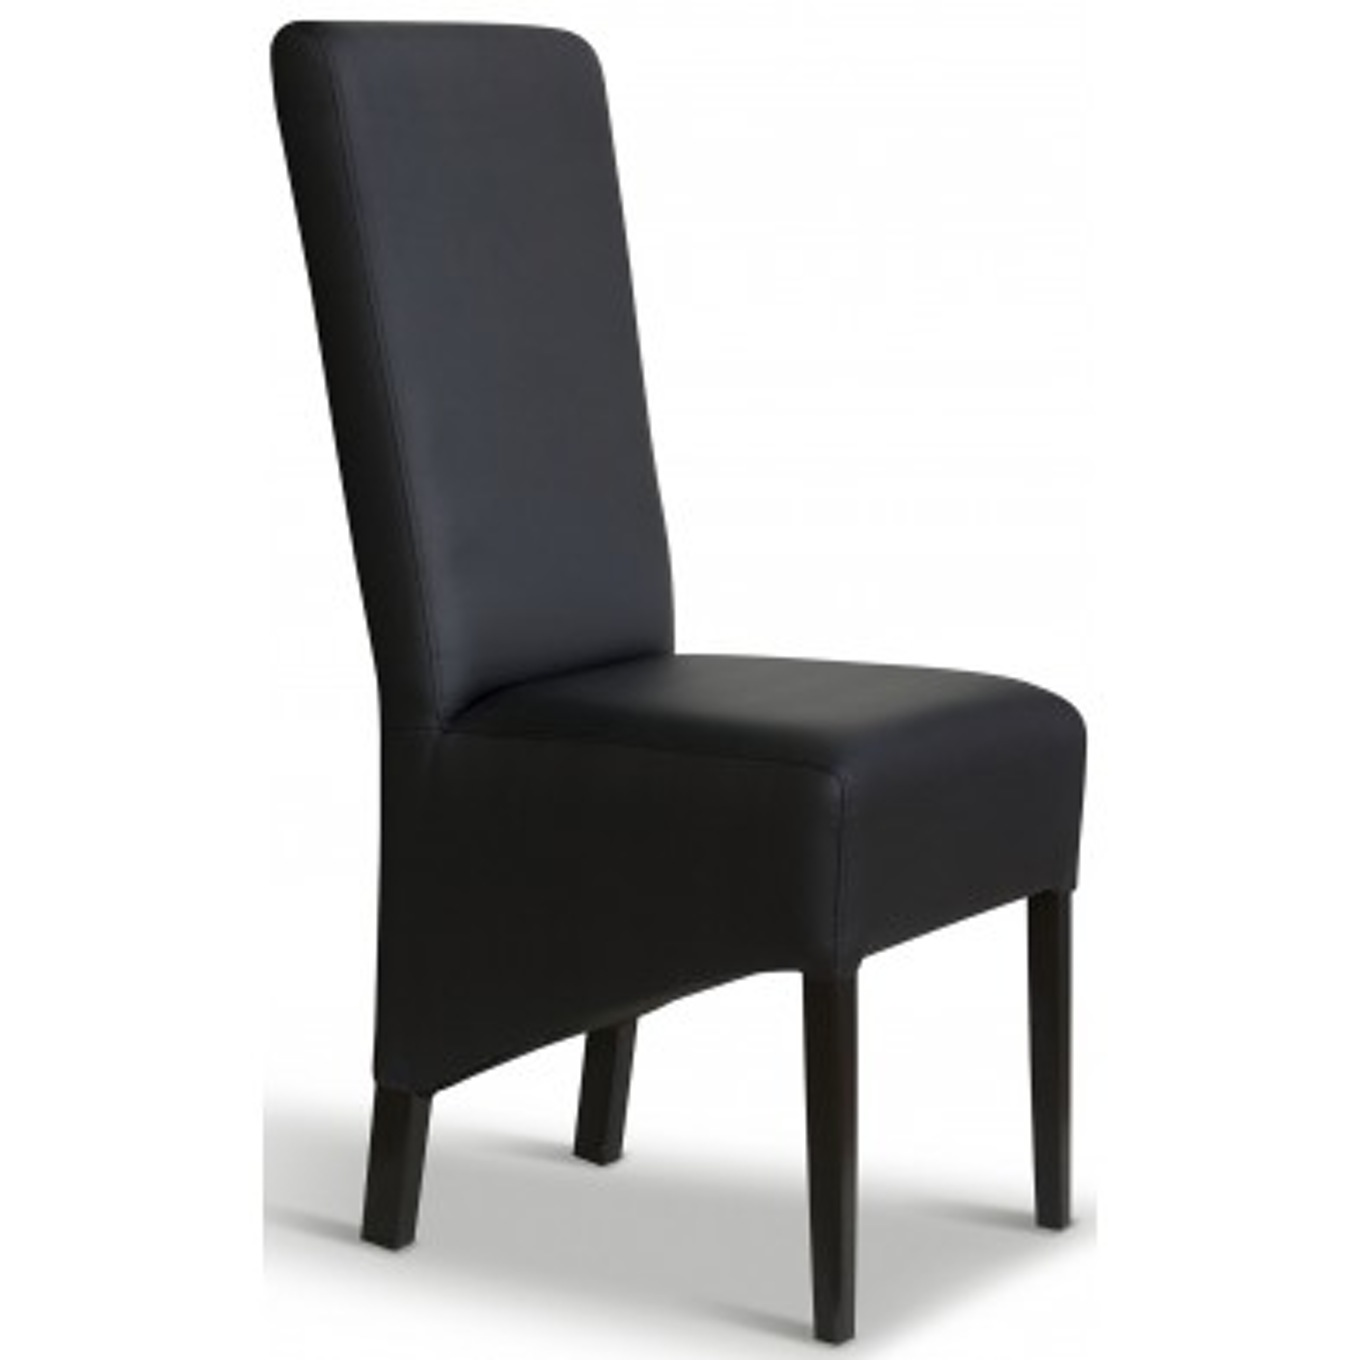 chaise en cuir noir elegant chaise noir pour table dinner. Black Bedroom Furniture Sets. Home Design Ideas